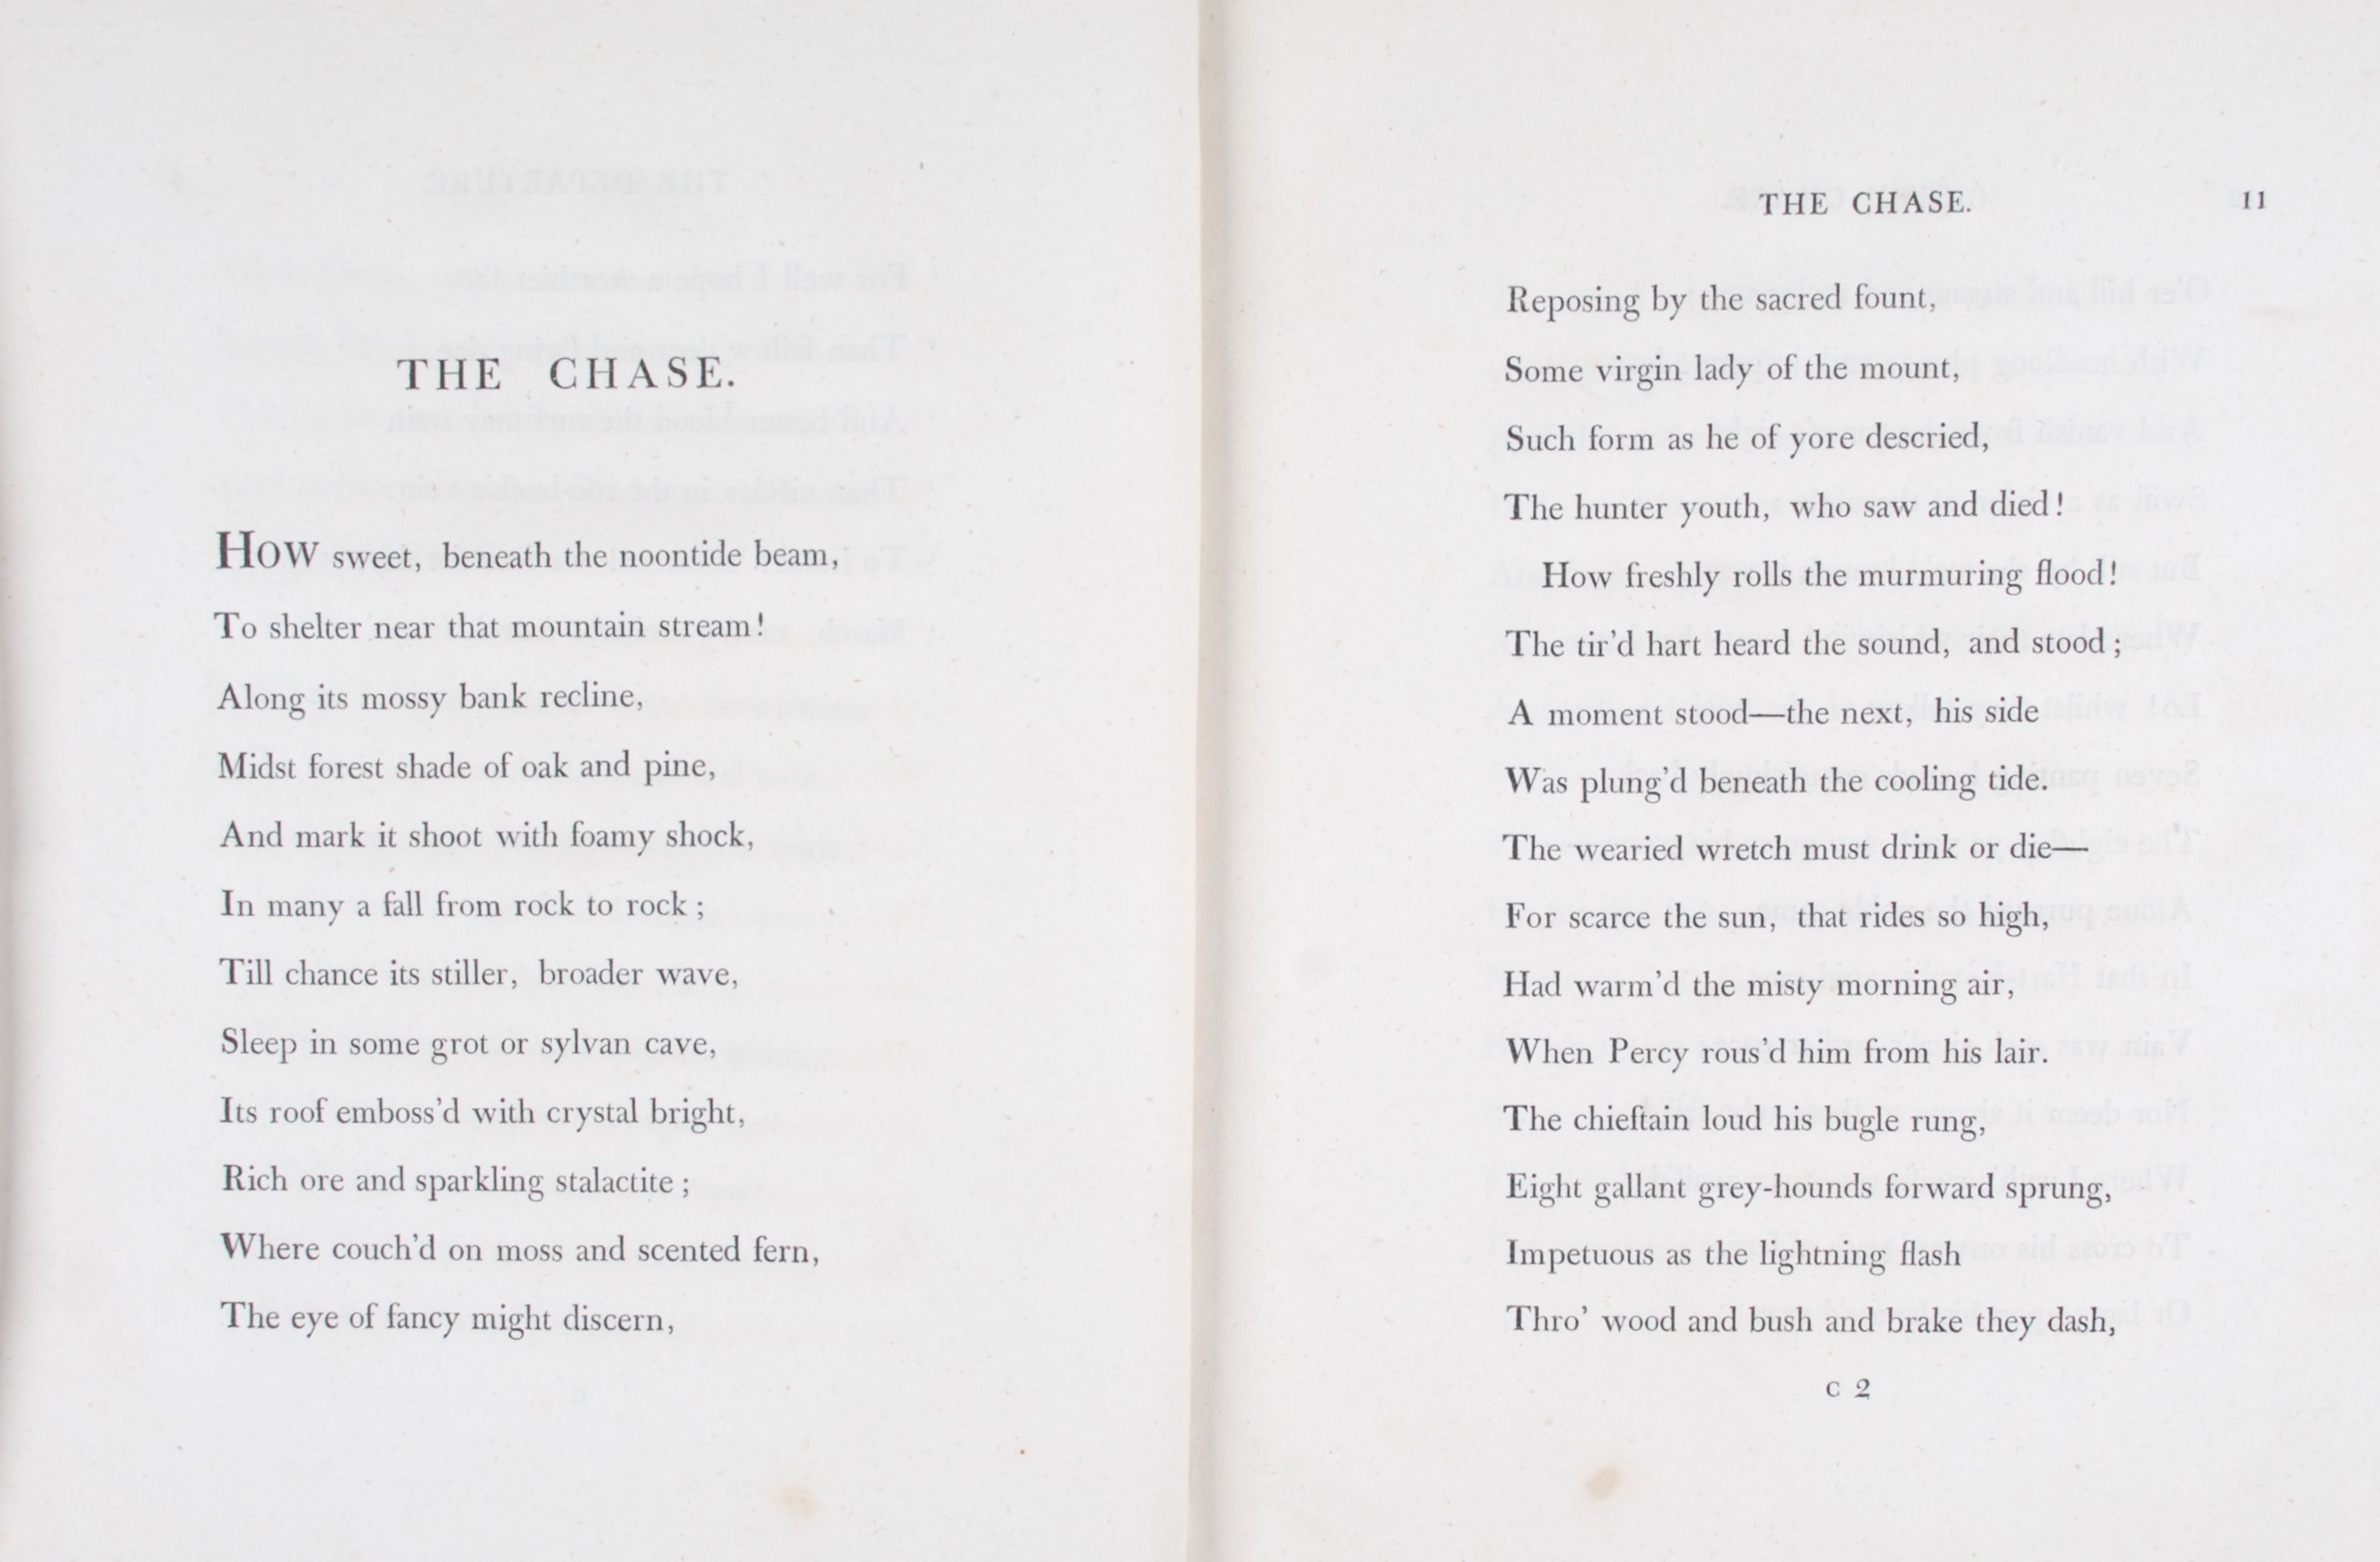 Robert Roscoe. Chevy Chase: a poem founded on the ancient ballad. London: T. Cadell and W. Davies, 1813.